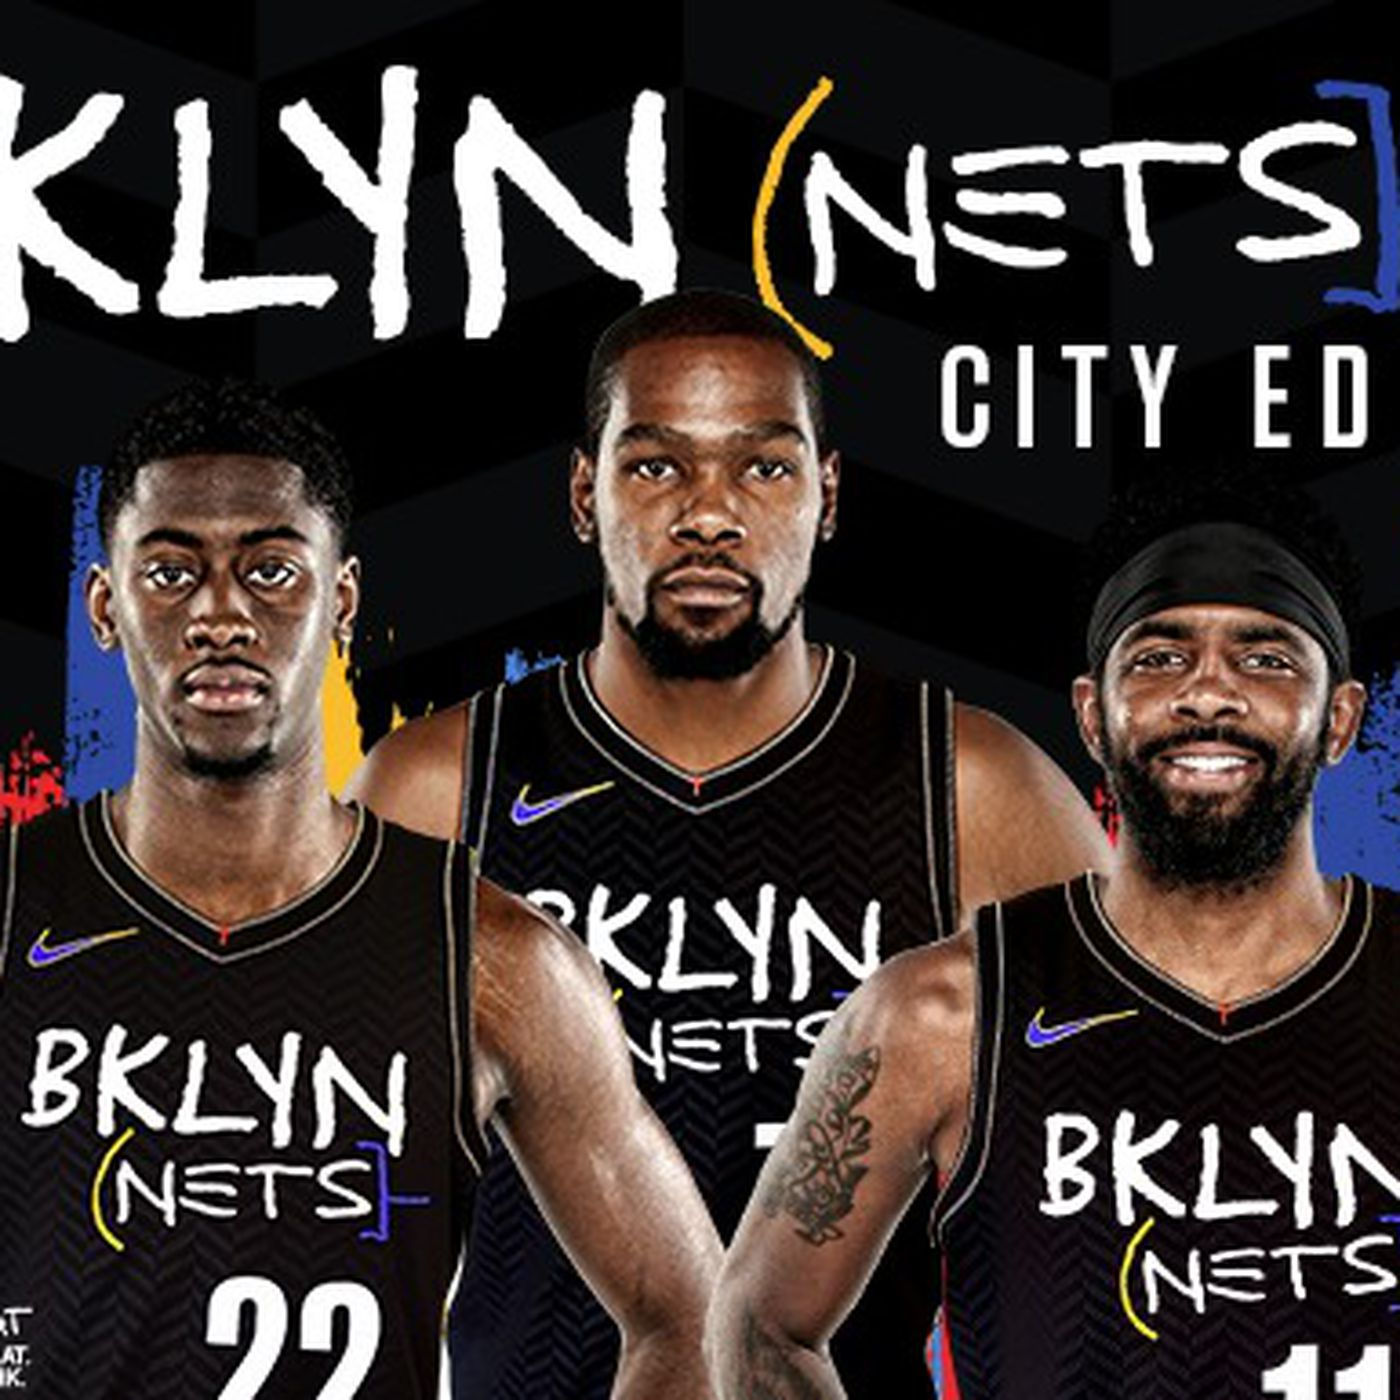 Nets' Basquiat-themed City Edition gear goes on sale ... with 'Big Three'  promotion - NetsDaily